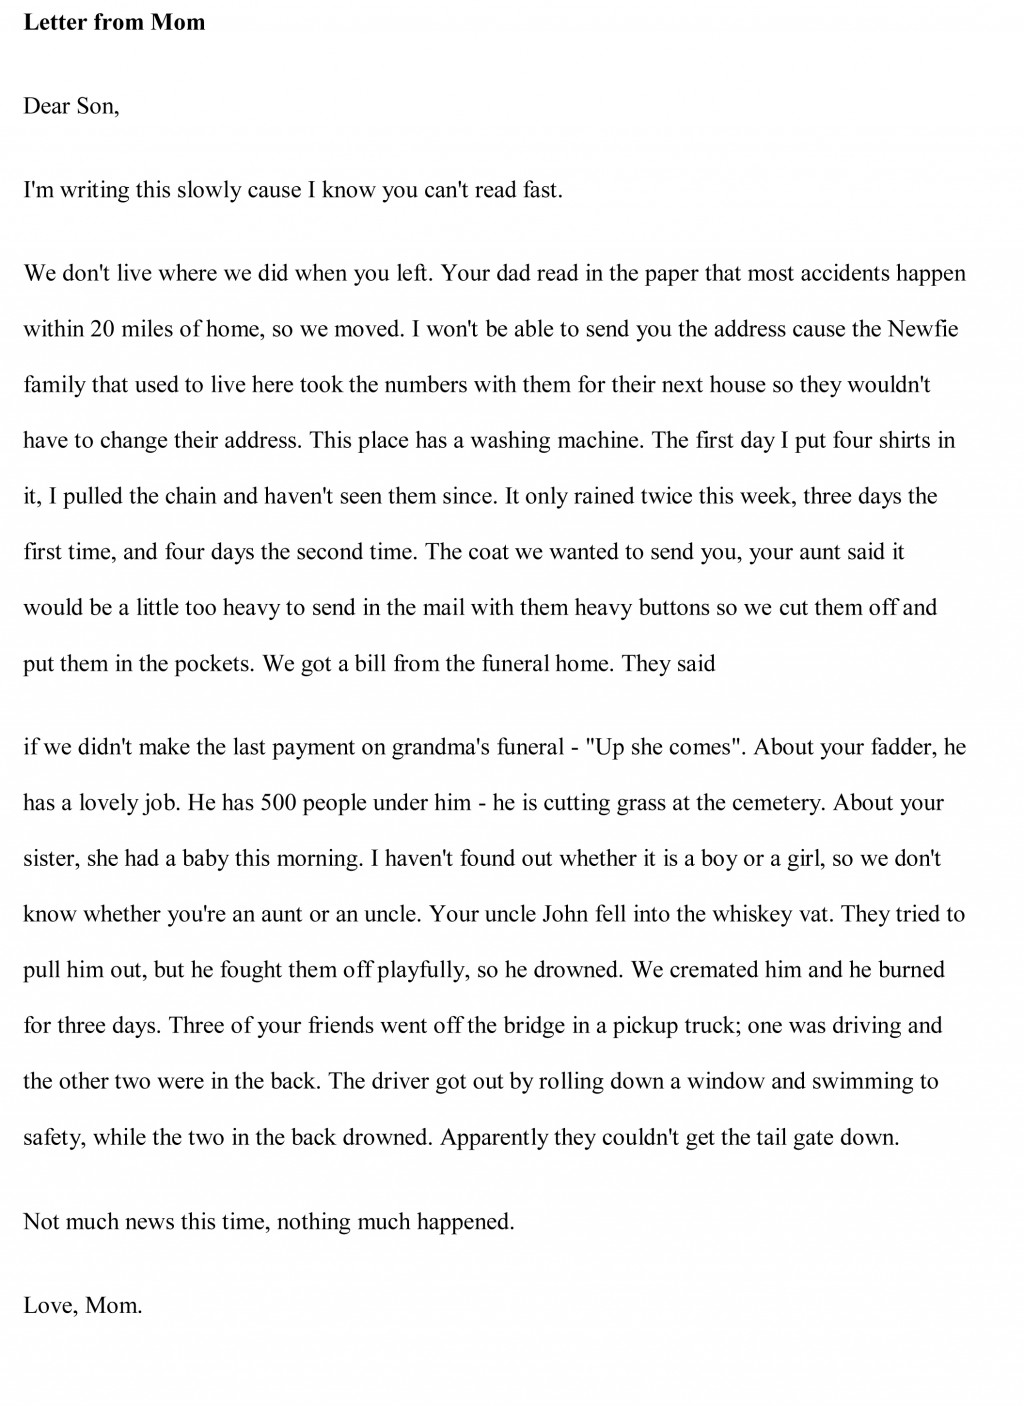 005 Research Paper Funny Essay Free Sample Topics To Do Marvelous A On Large